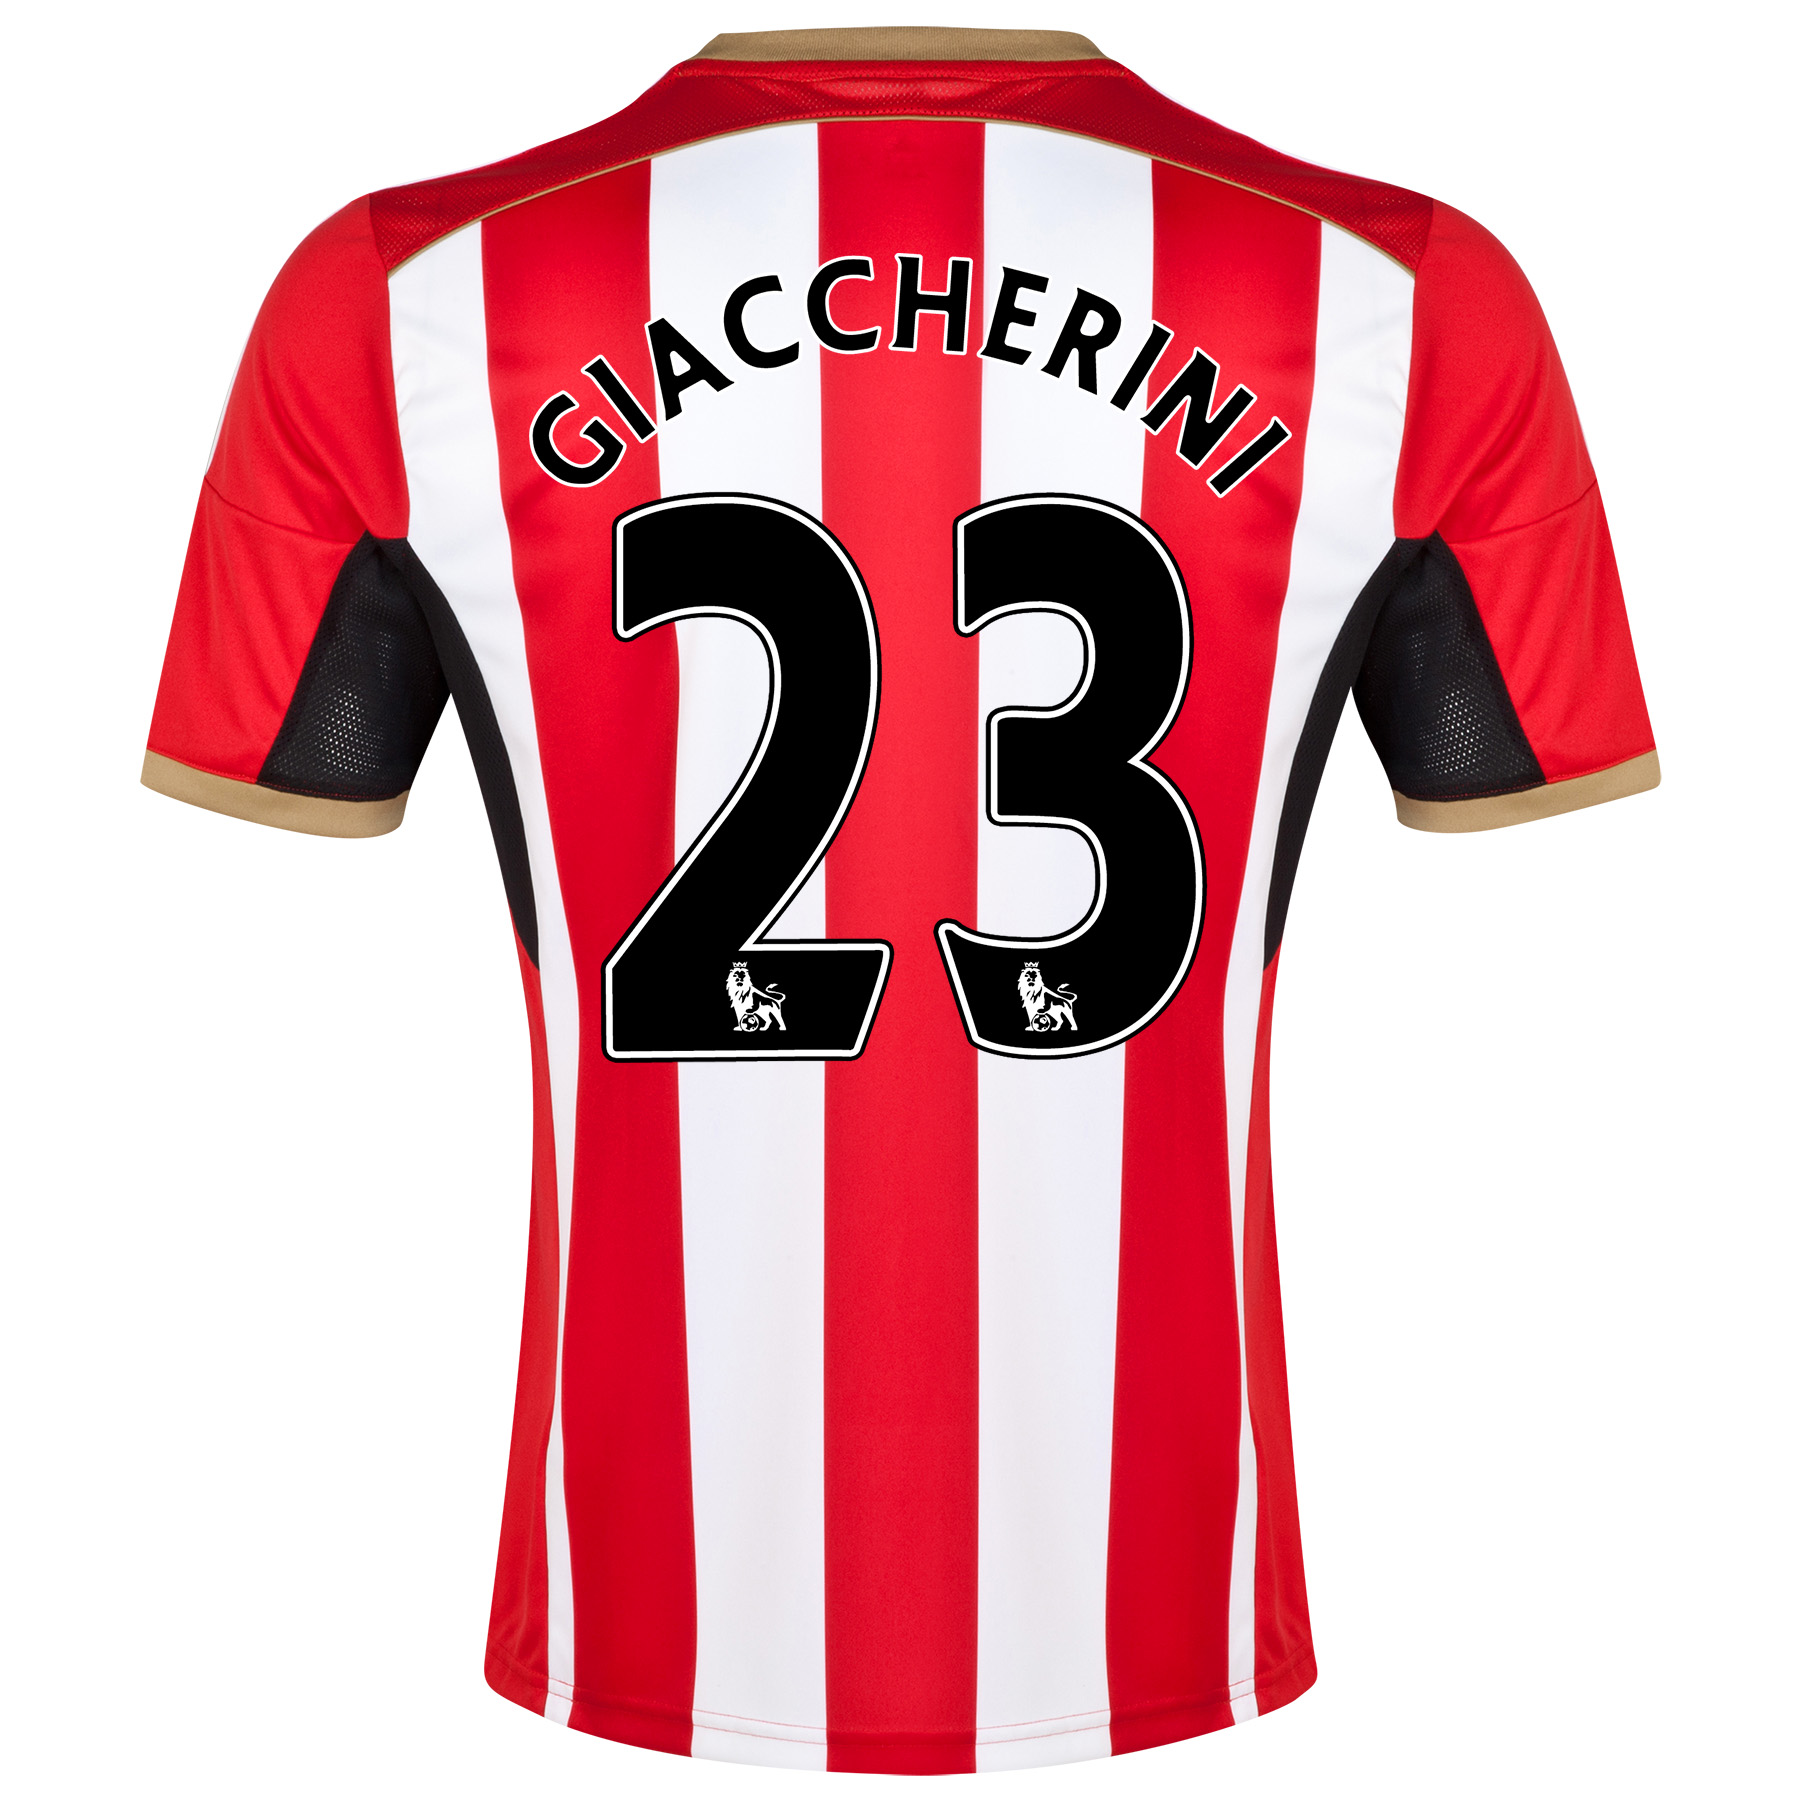 Sunderland Home Shirt 2014/15 Red with Giaccherini 23 printing